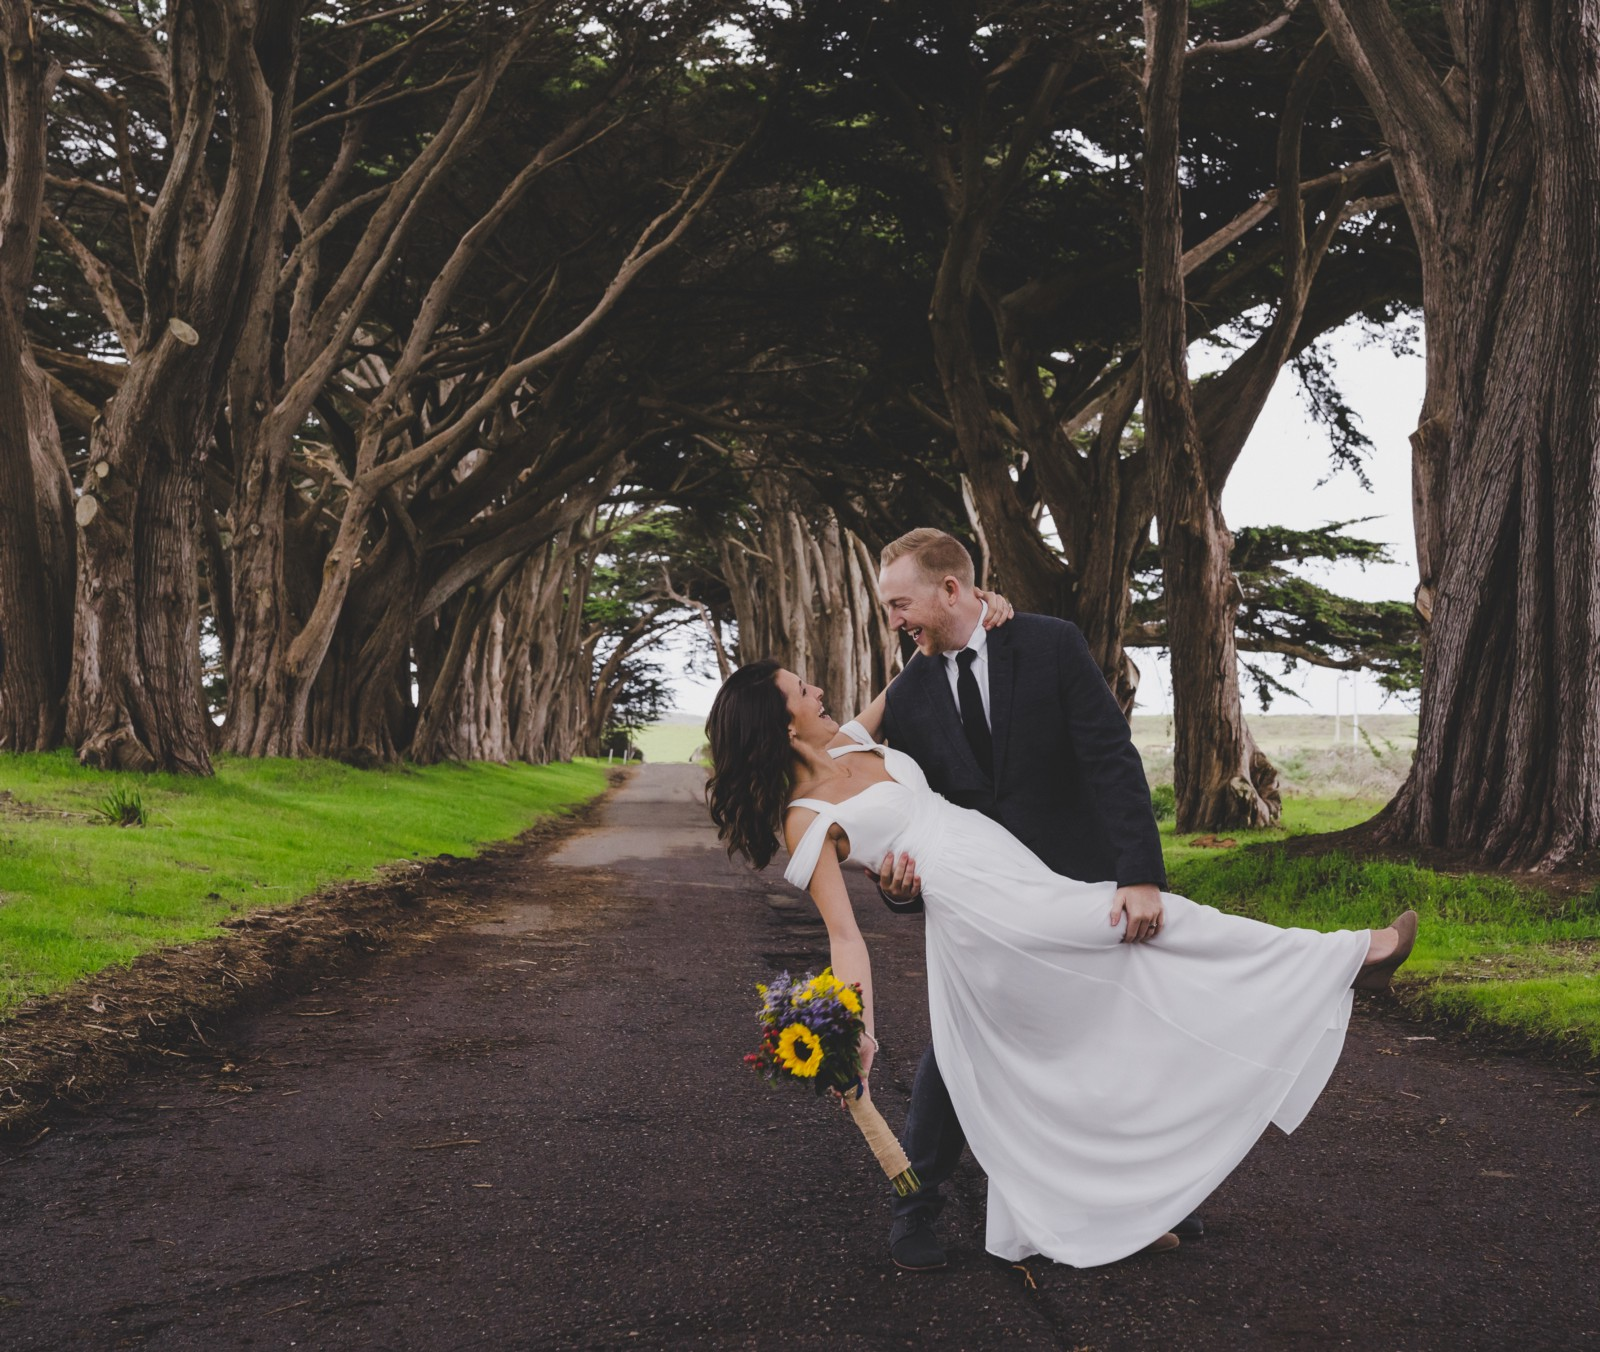 On February 25 2017 Kyle And I Stood Together Under The Cypress Tree Tunnel In Point Reyes National Park Exchanged Our Wedding Vows